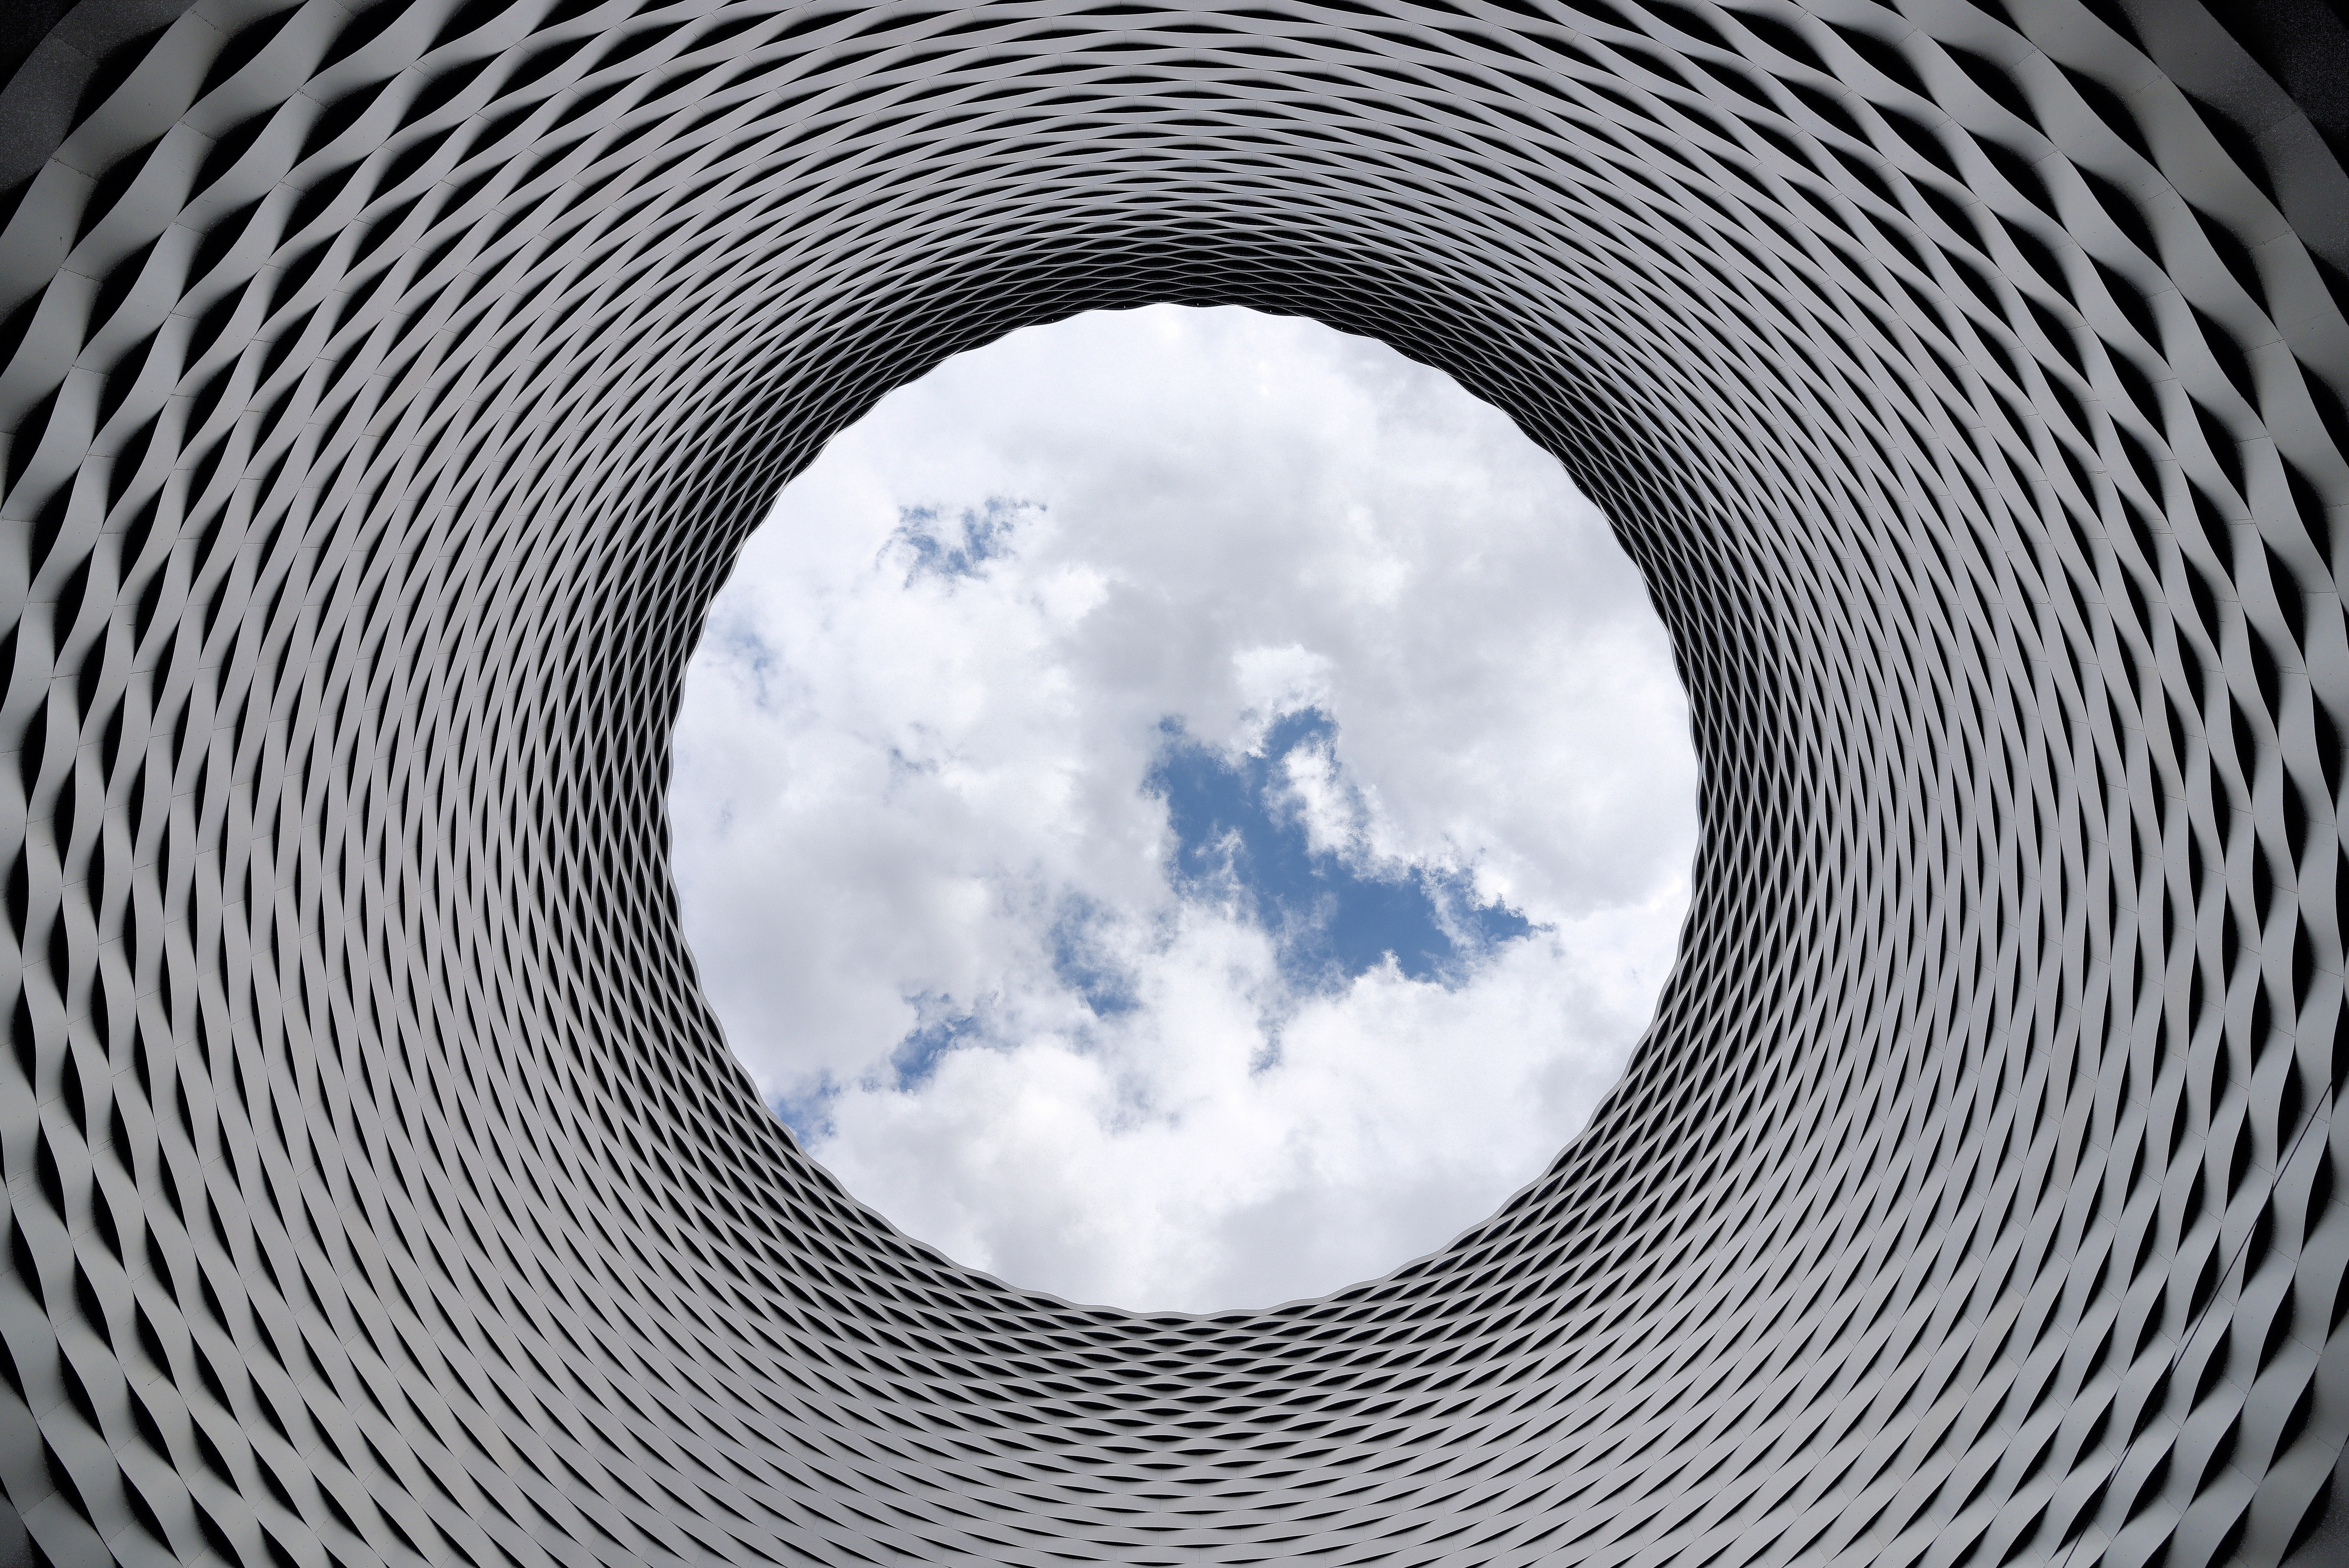 Abstract metal mandala, with sky in centre